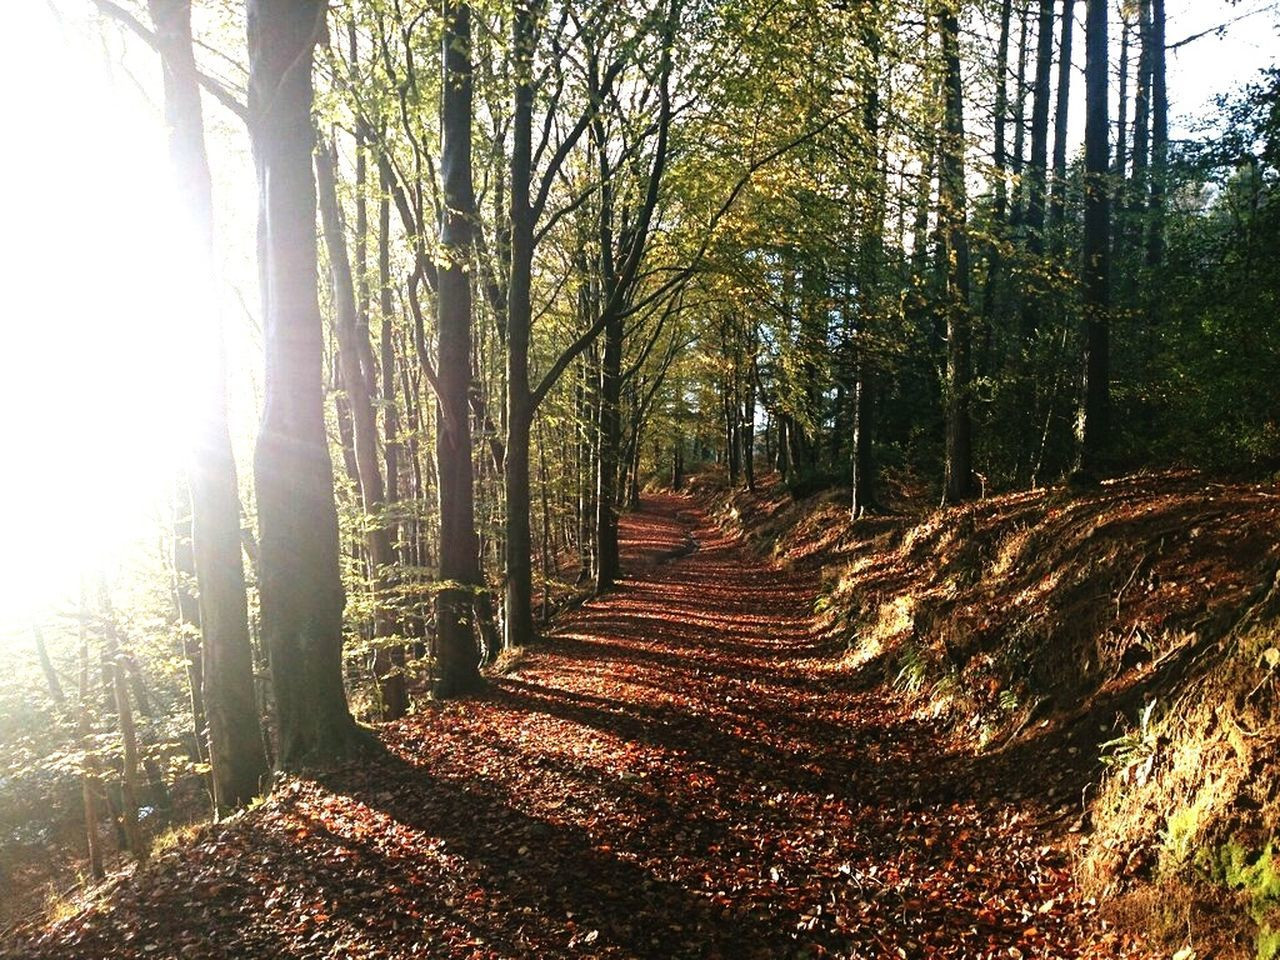 tree, forest, the way forward, nature, tranquility, sunlight, tranquil scene, day, tree trunk, scenics, beauty in nature, landscape, woodland, growth, outdoors, no people